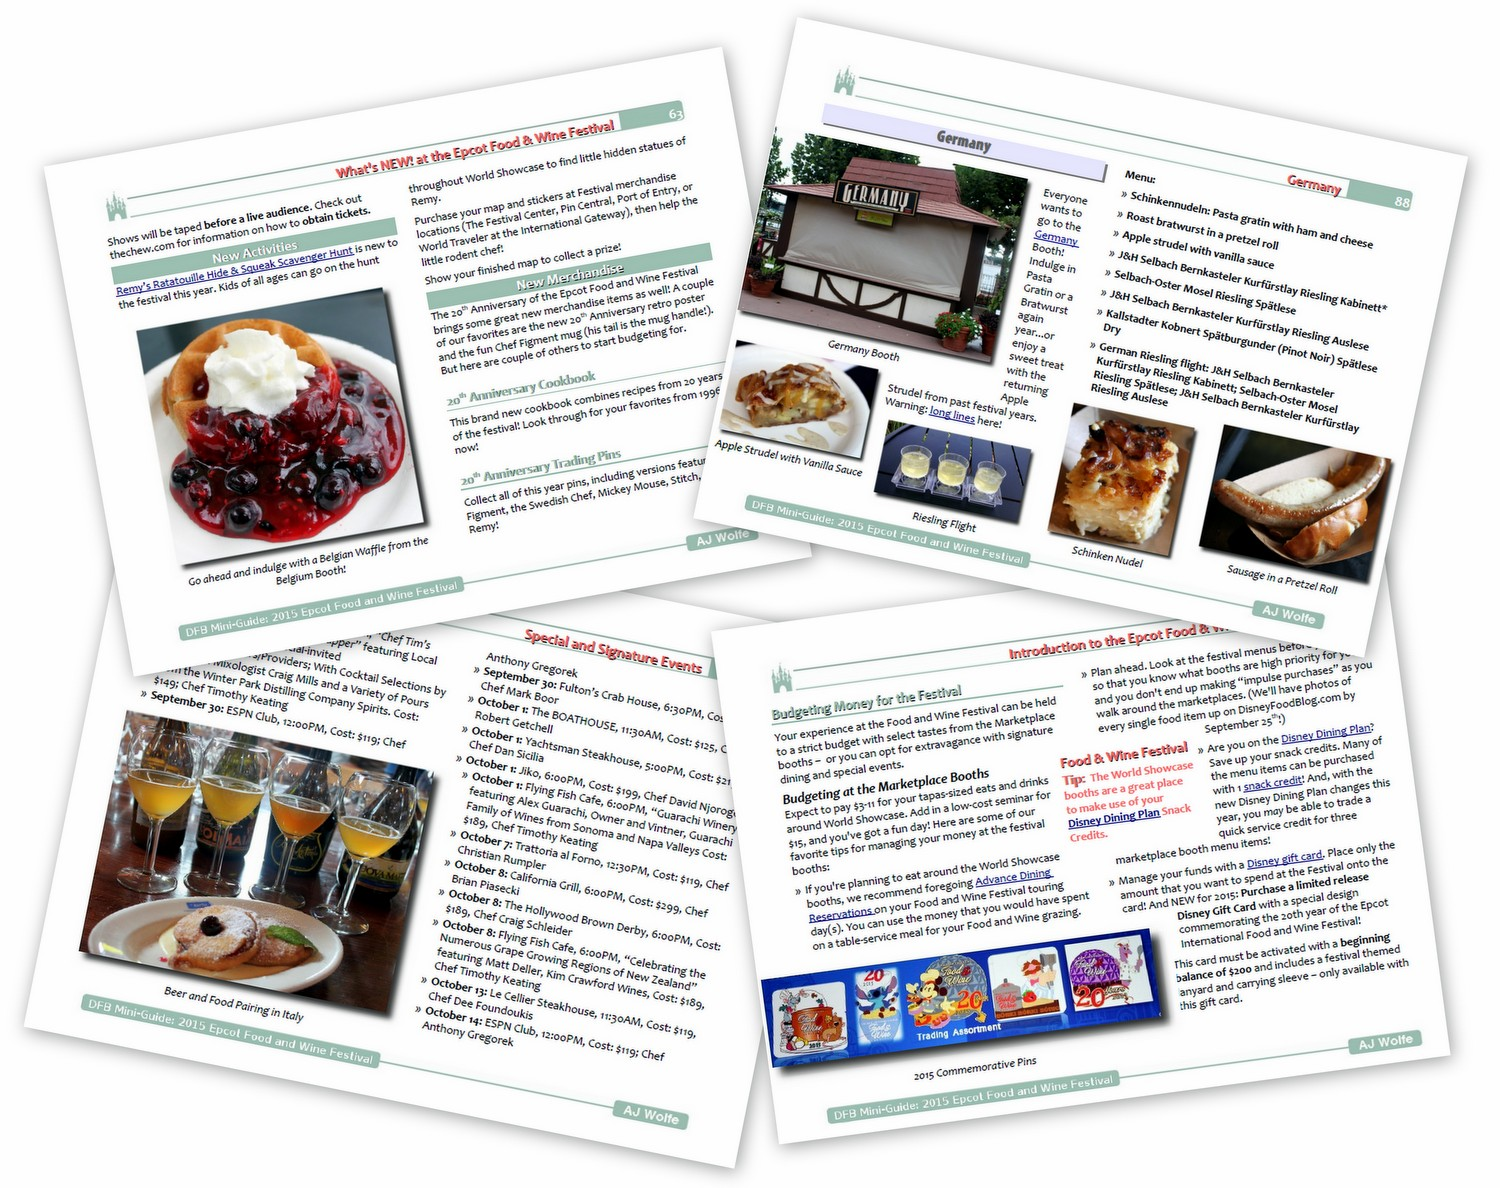 The Dfb Guide To The 2015 Epcot Food & Wine Festival Ebook